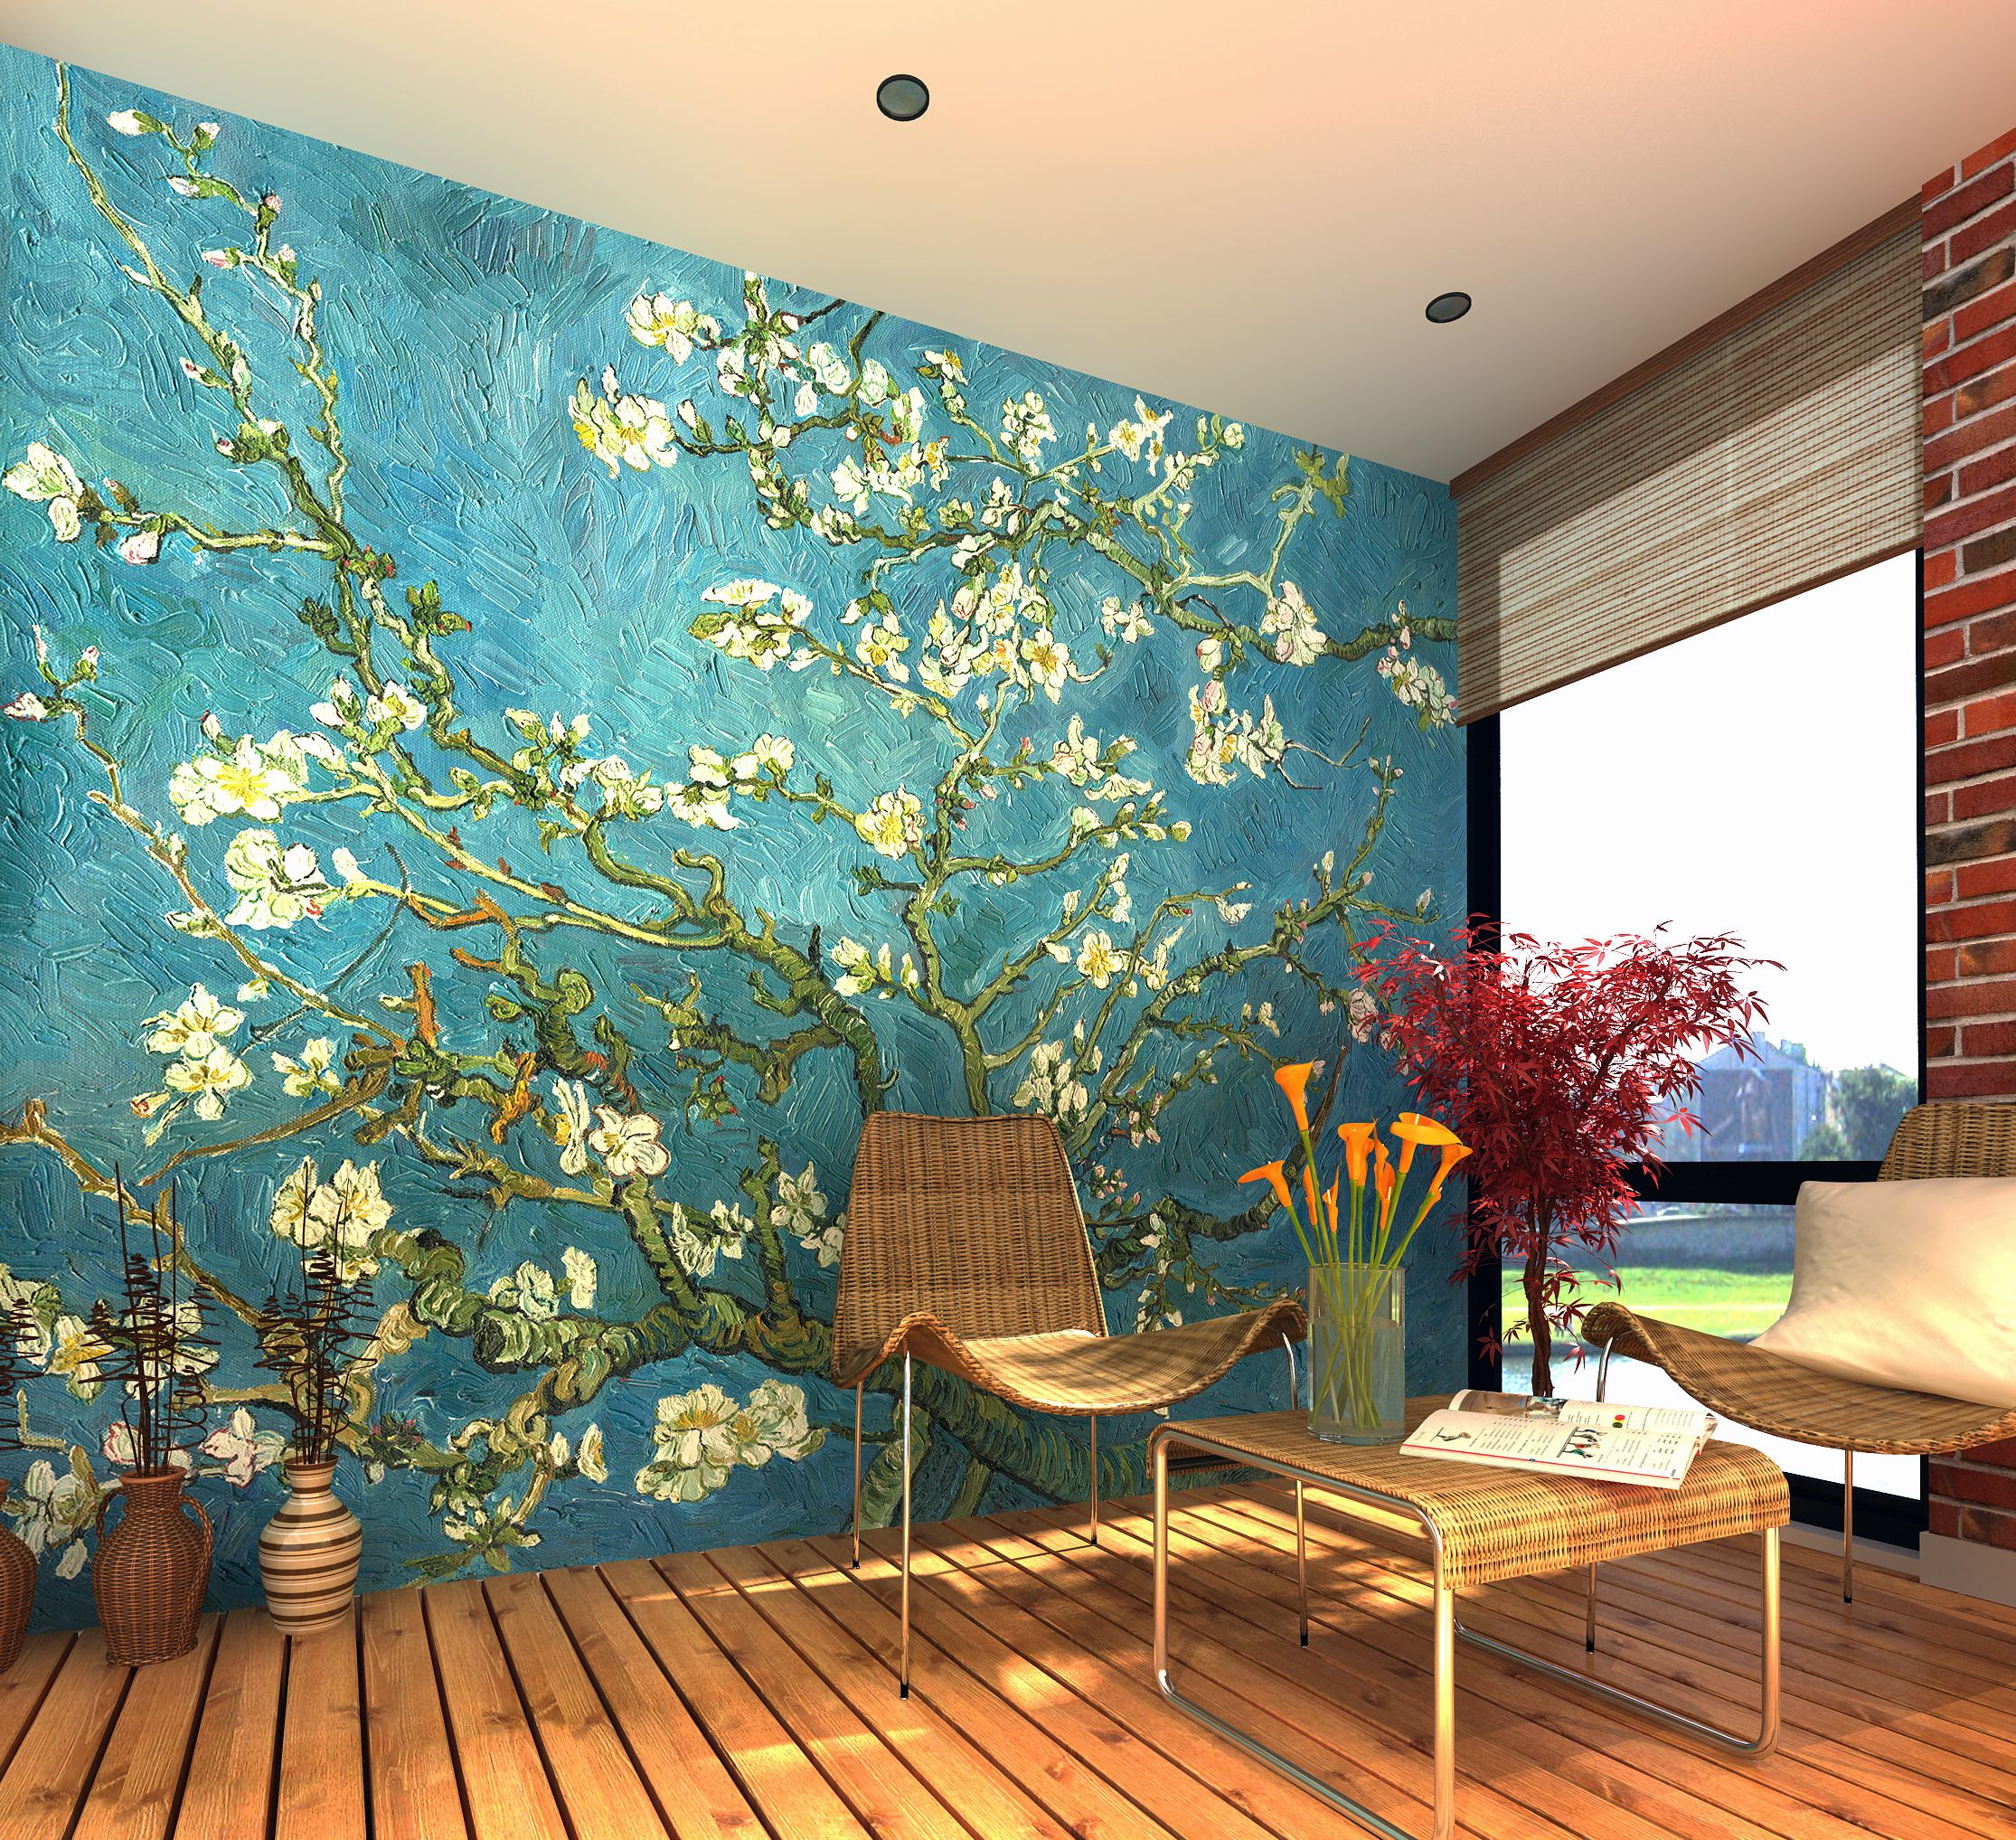 Wall Decorations For Large Walls Van Gogh Almond Blossom Wall Mural Wallpaper